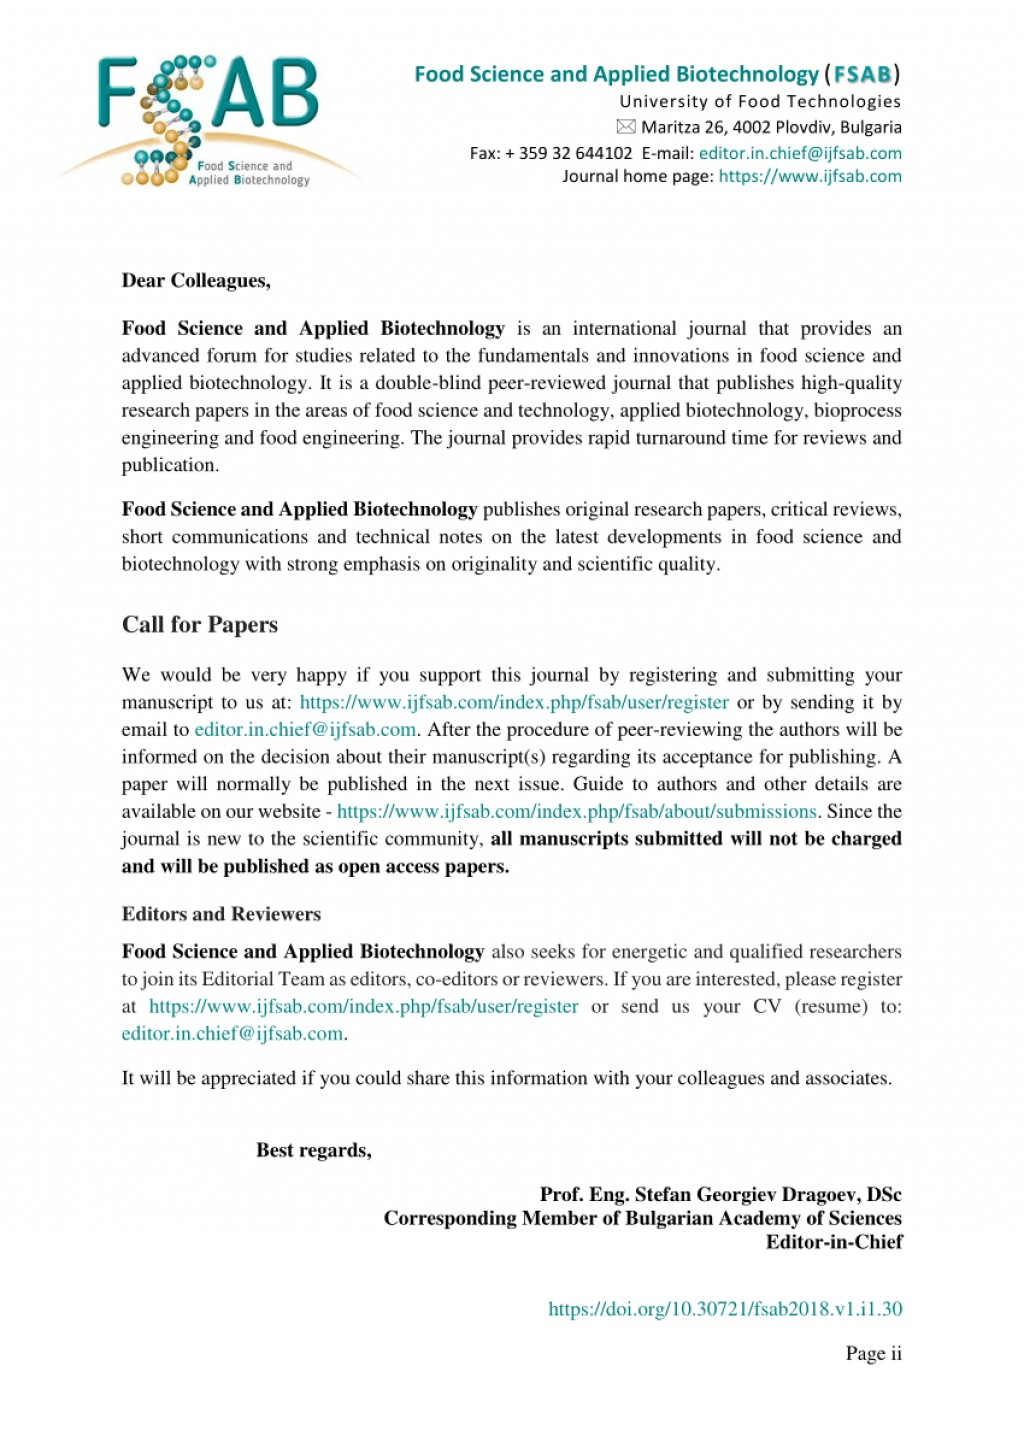 002 Food Technology Researchs Largepreview Top Research Papers Pdf Science And Large